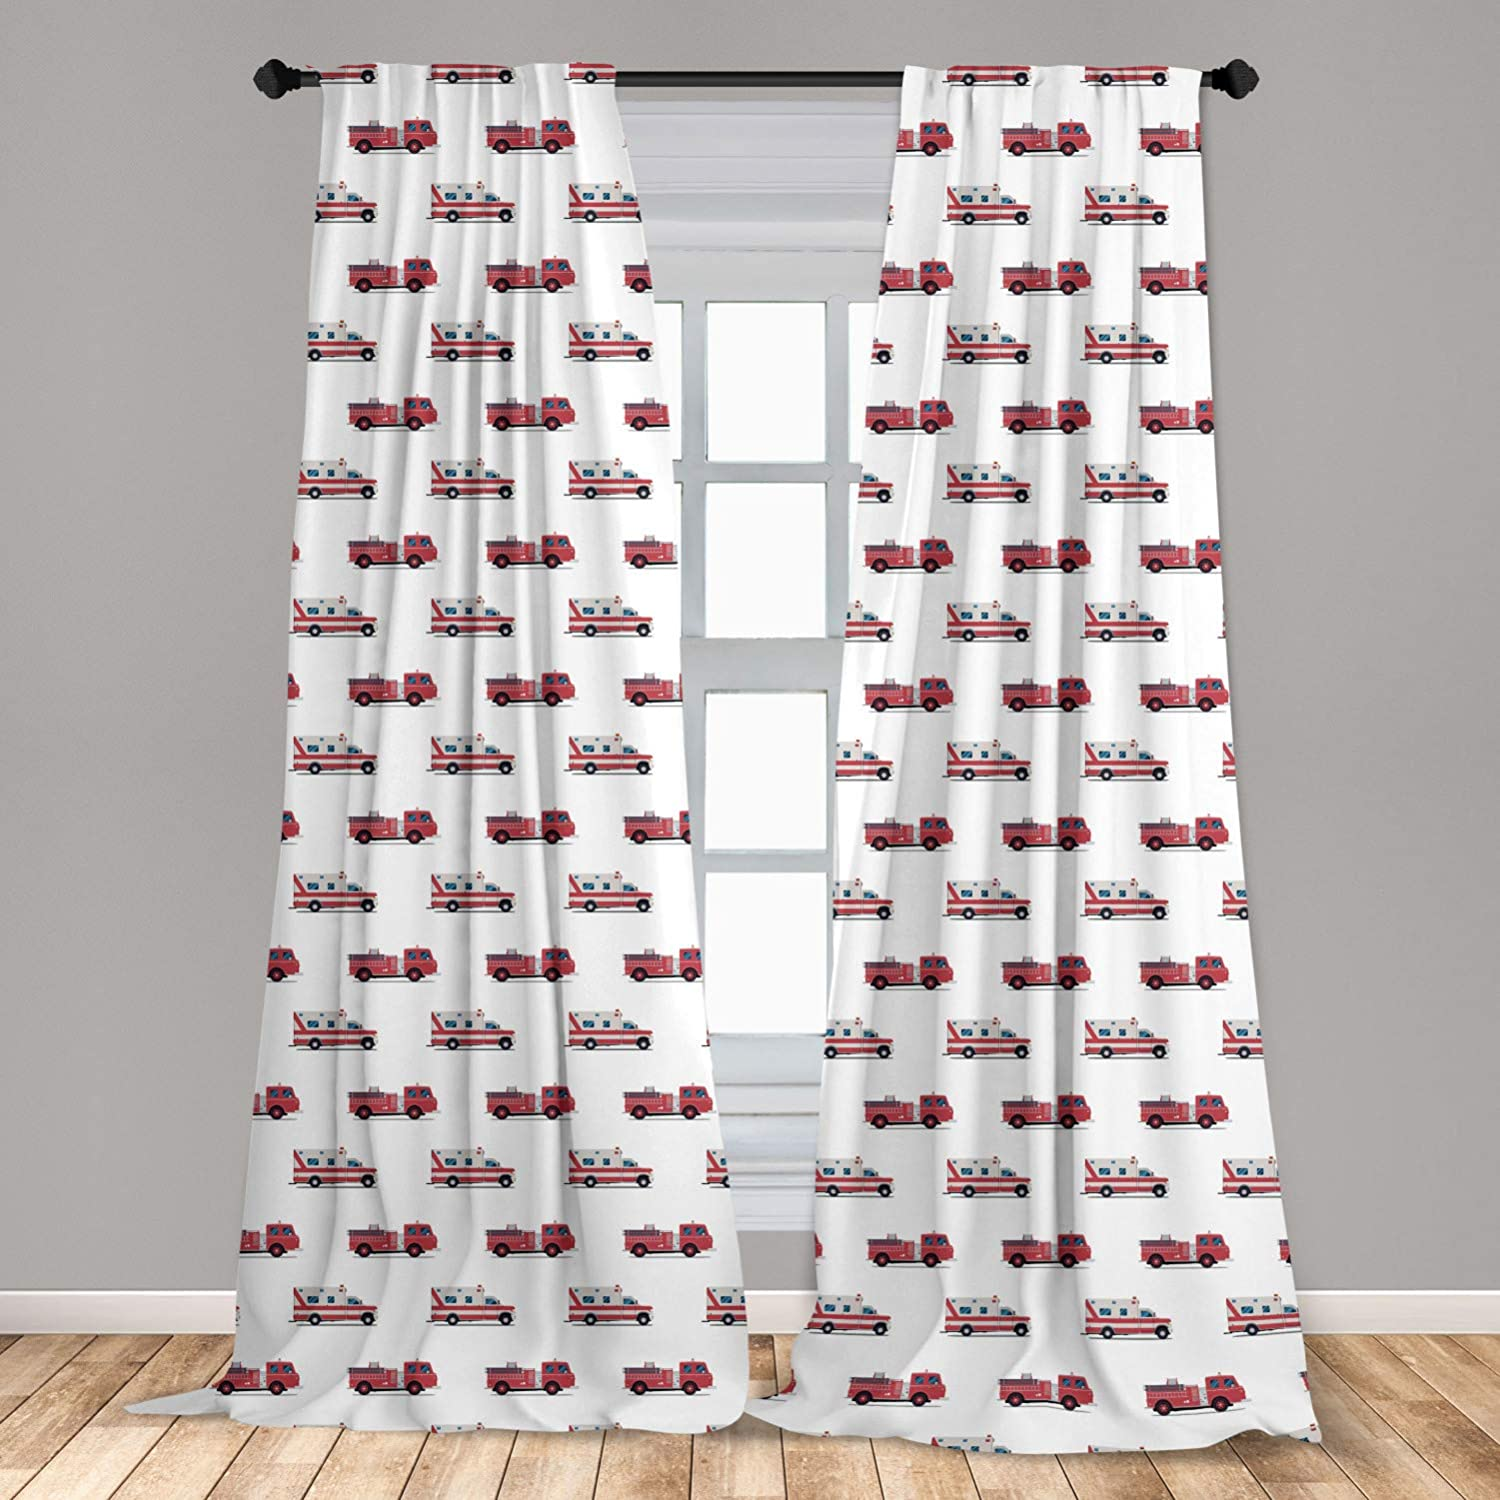 """Lunarable Fire Truck Curtains, Pattern of The Fire Engines and Ambulances Security Safety and Rescue Vehicles, Window Treatments 2 Panel Set for Living Room Bedroom Decor, 56"""" x 63"""", Ruby Pink"""